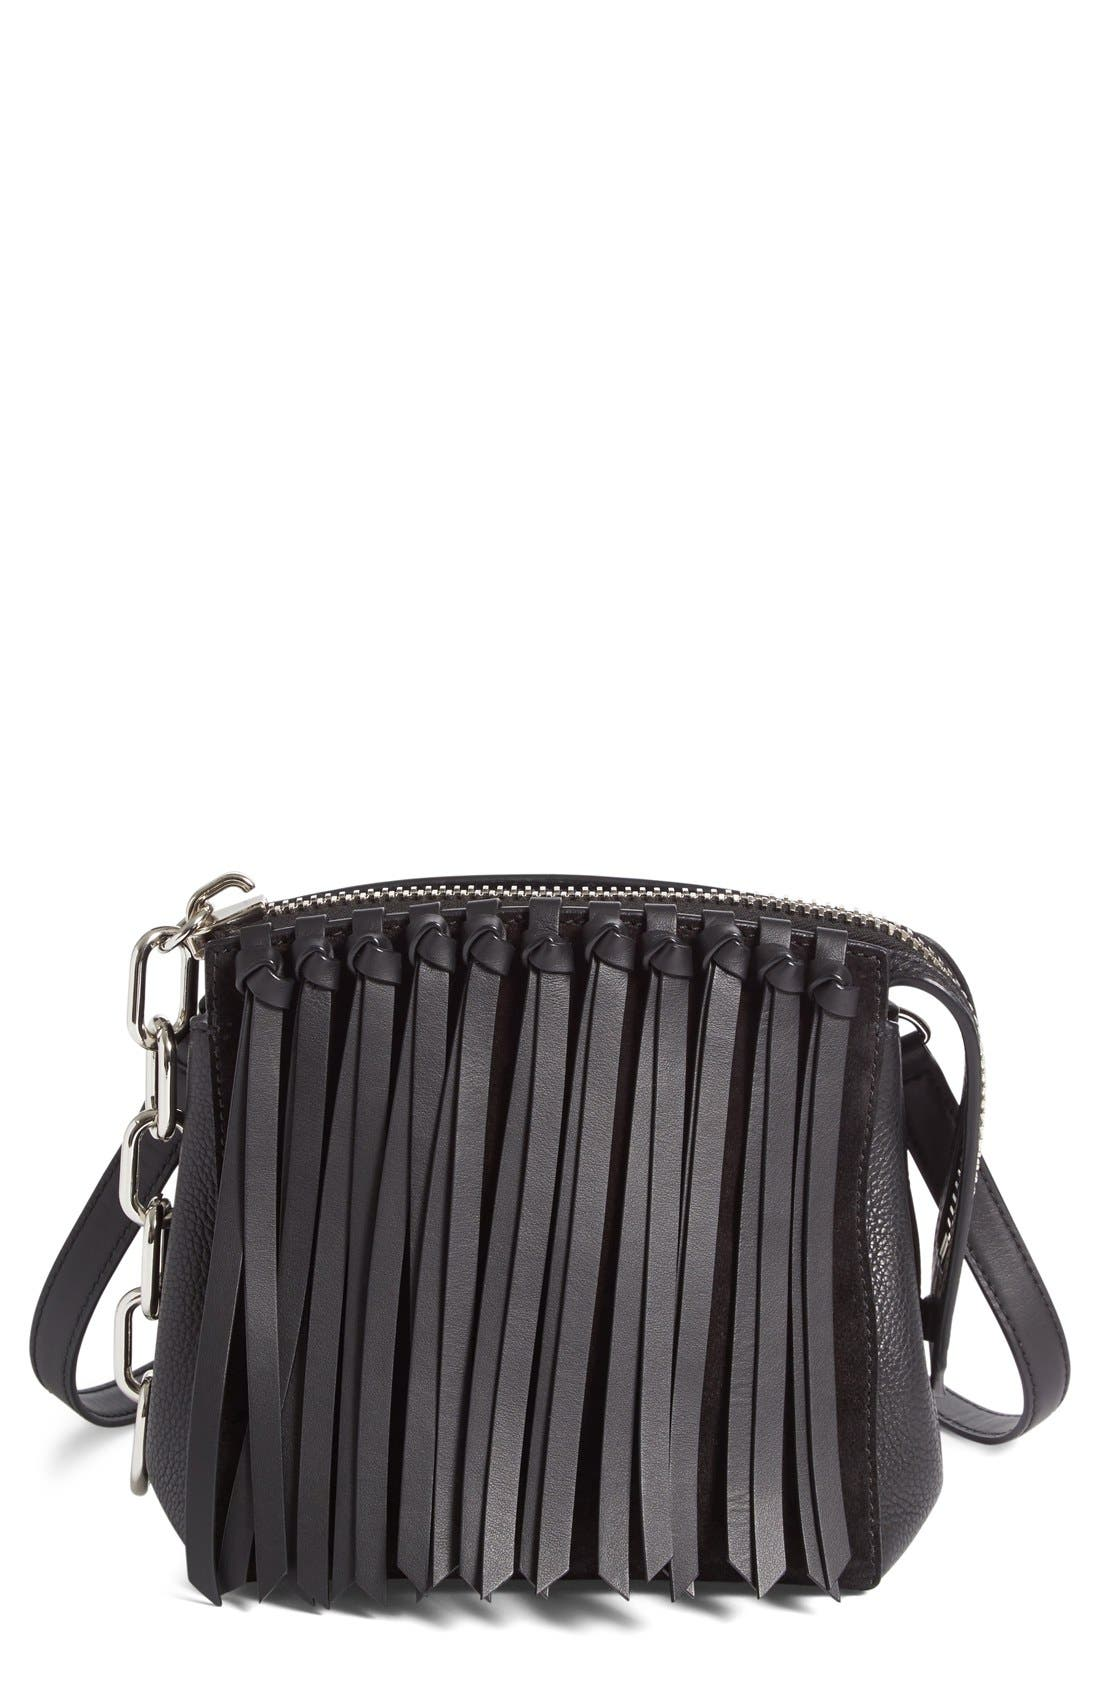 ALEXANDER WANG Attica Fringe Crossbody Bag